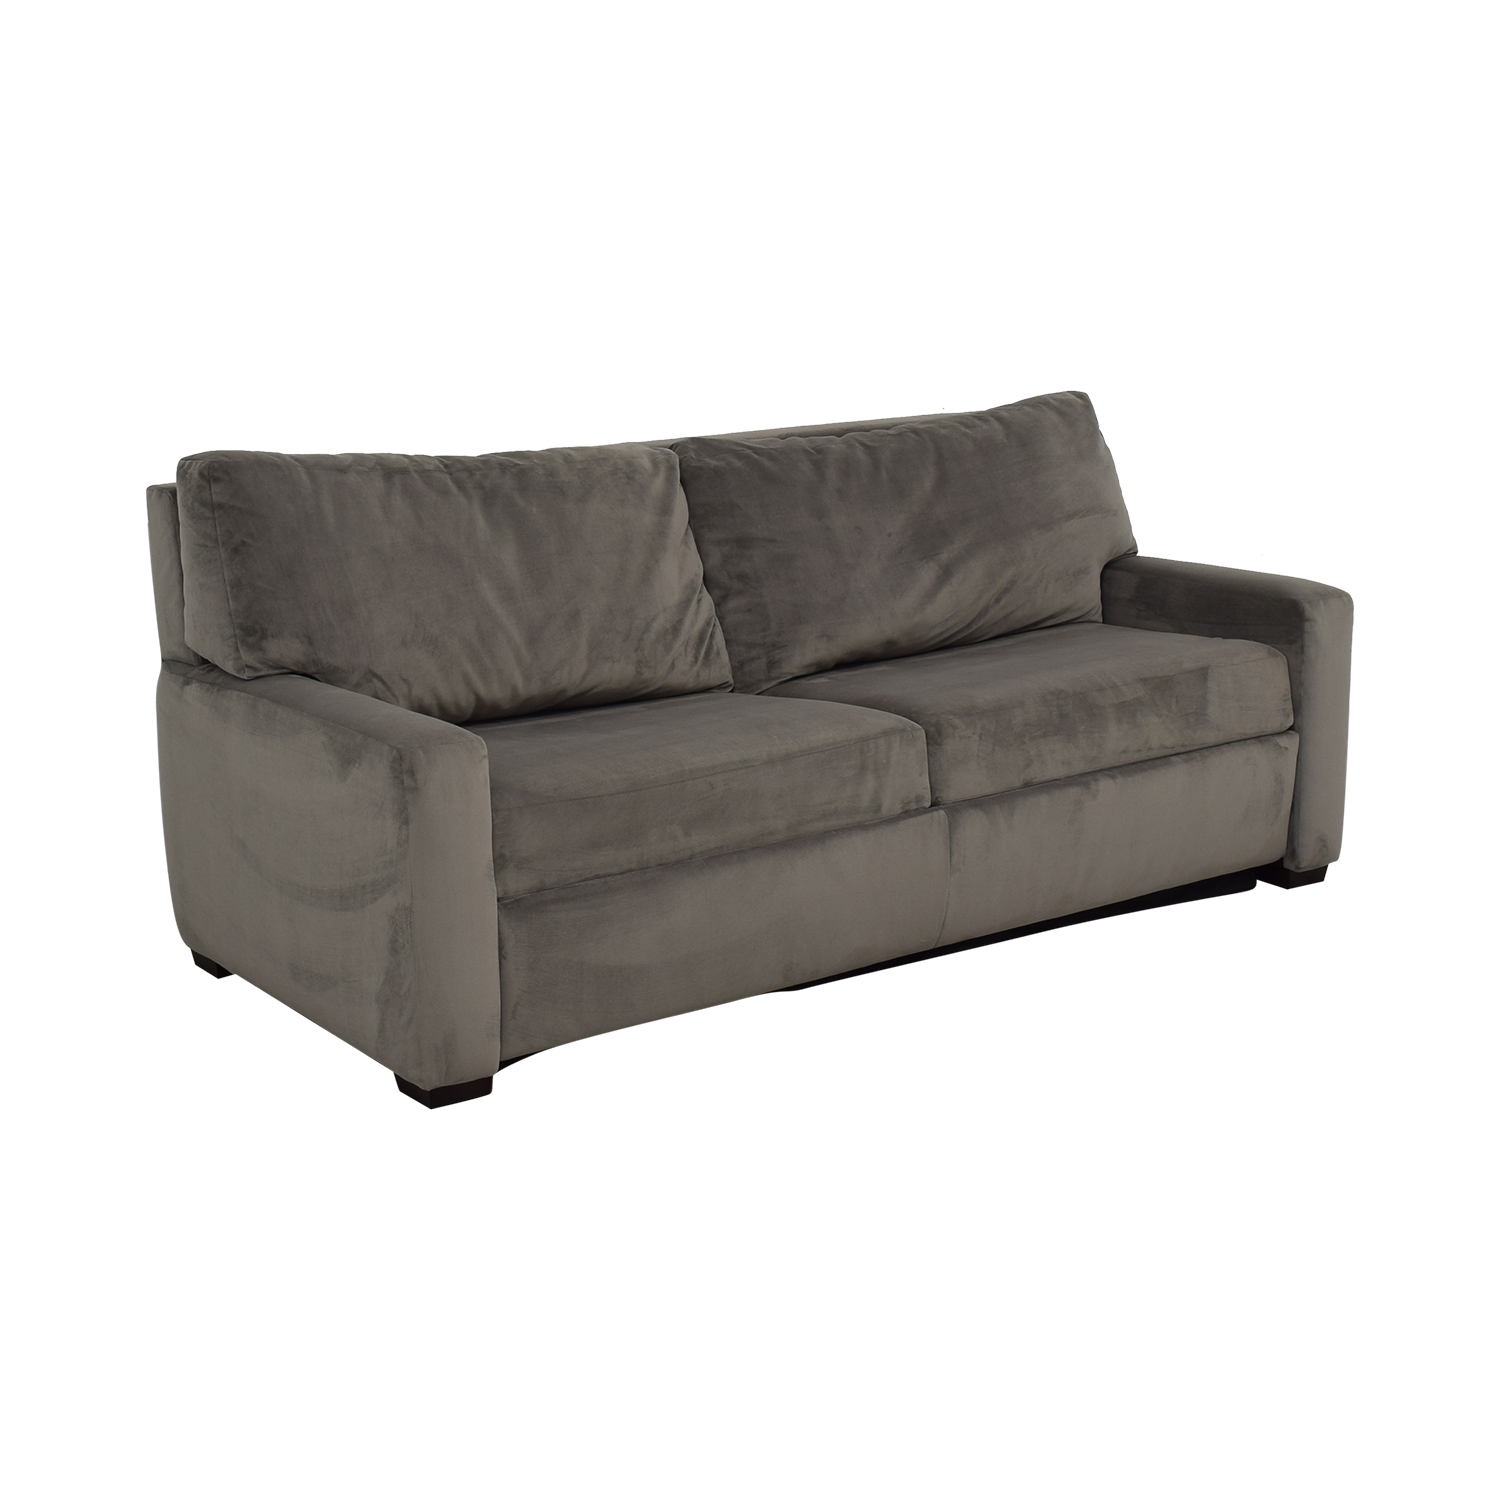 79% OFF - American Leather American Leather Cassidy Comfort Sleeper Sofa /  Sofas